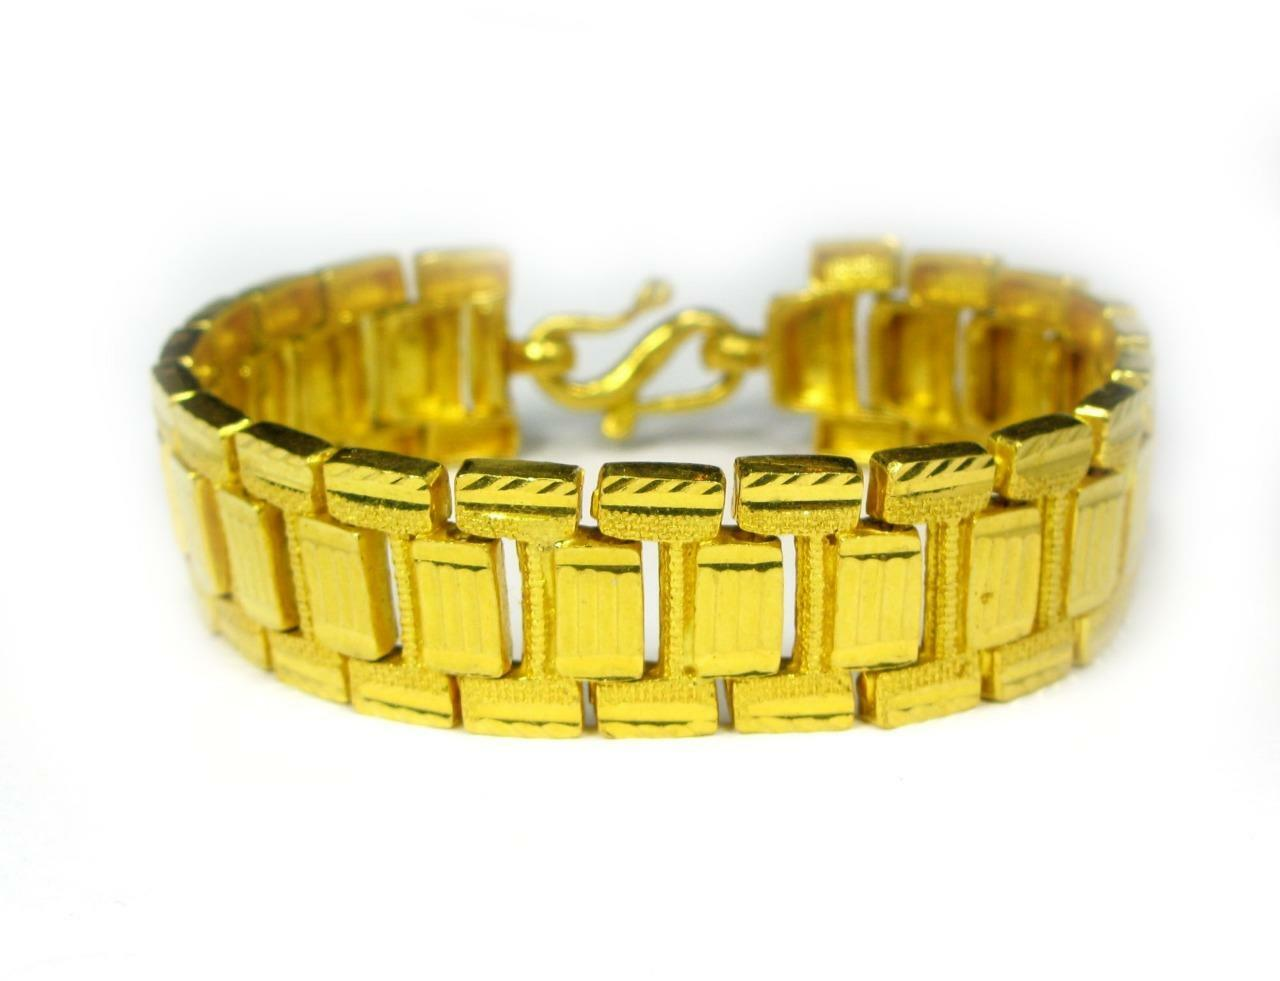 VINTAGE HEAVY 22K Yellow gold 15.8mm WIDE Link Bracelet 46.5 Grams - Well Made